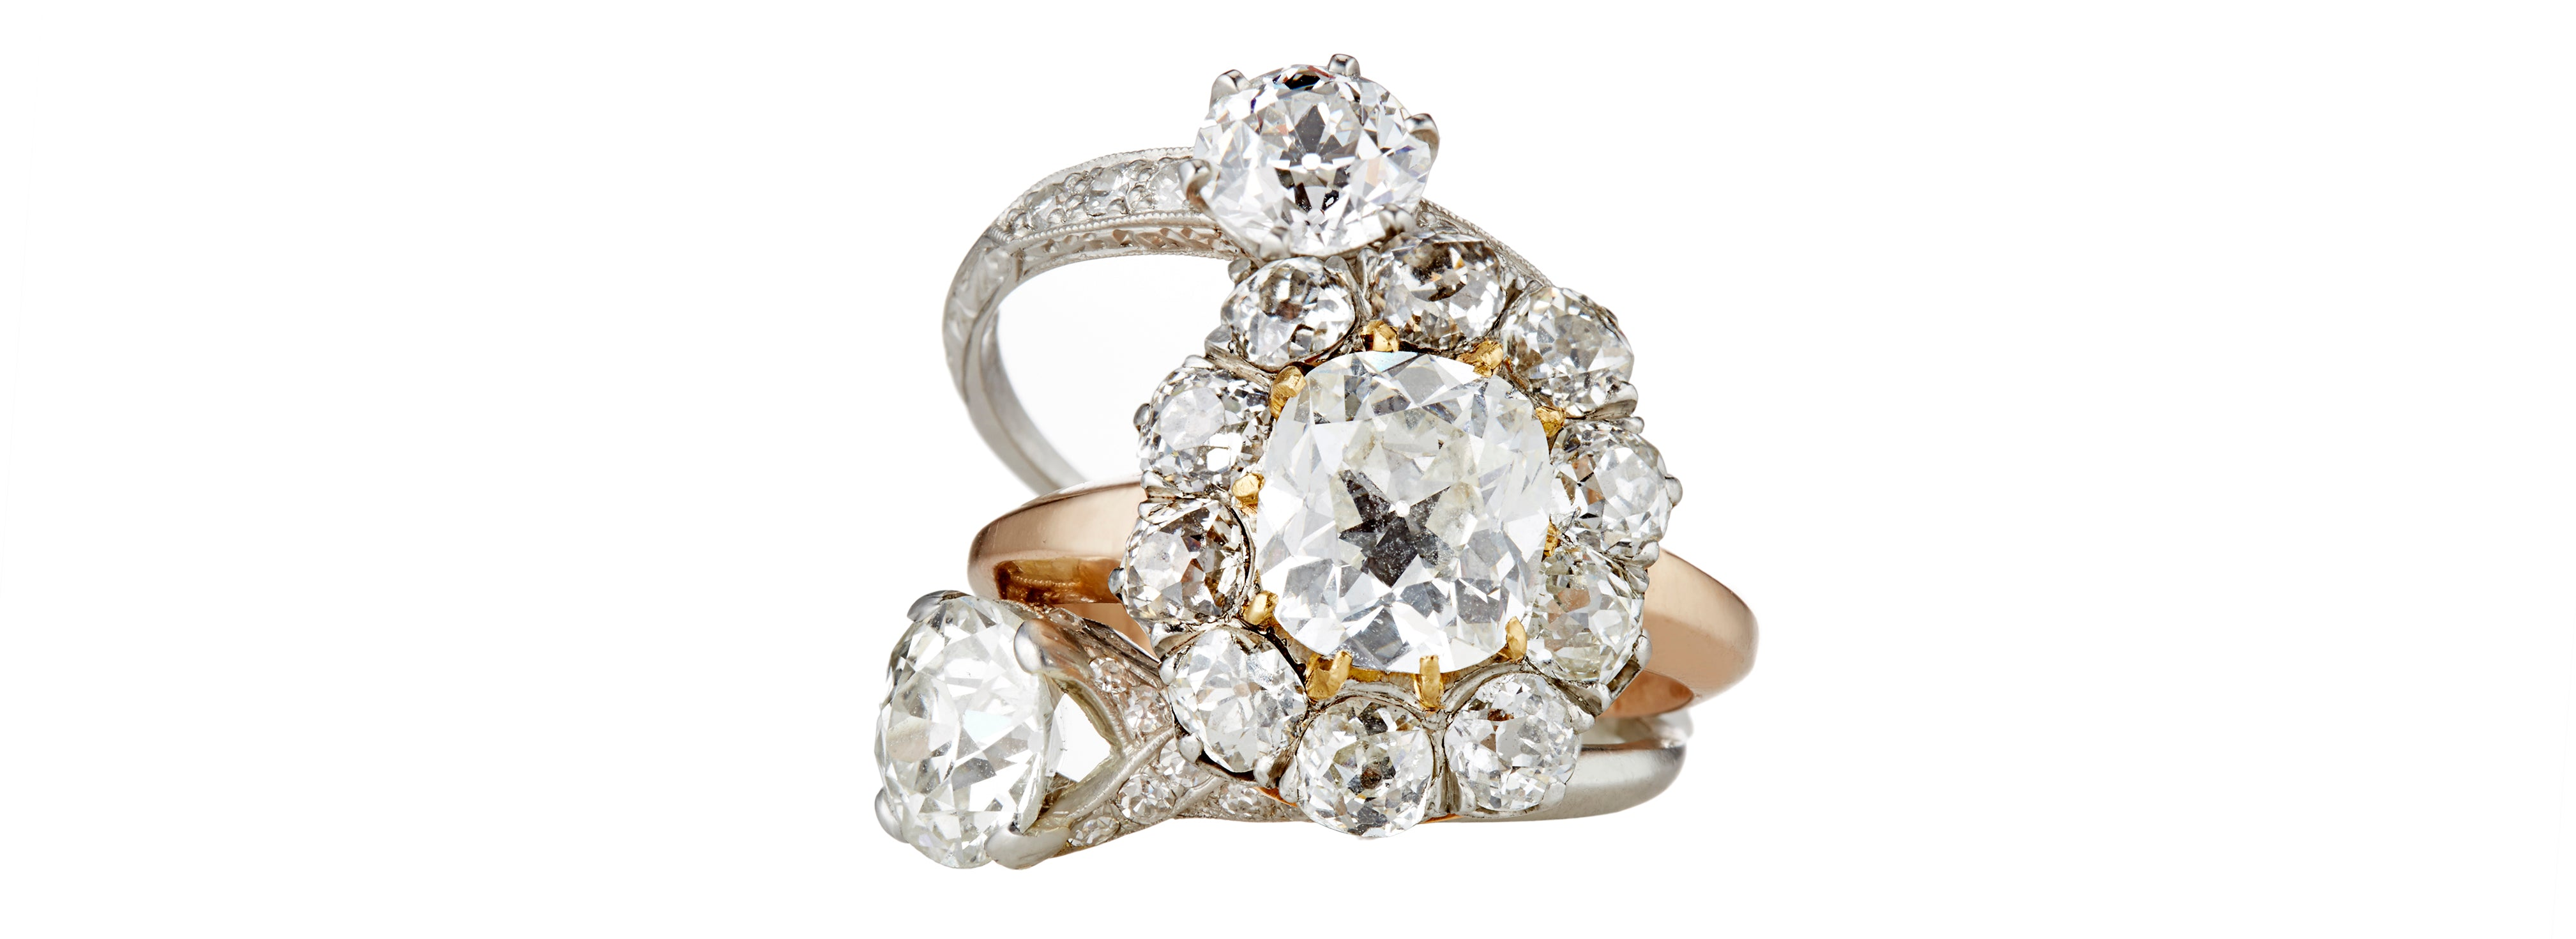 pave settings setting diamond in ring about all the old world rings meaning learn wedding jewelry school